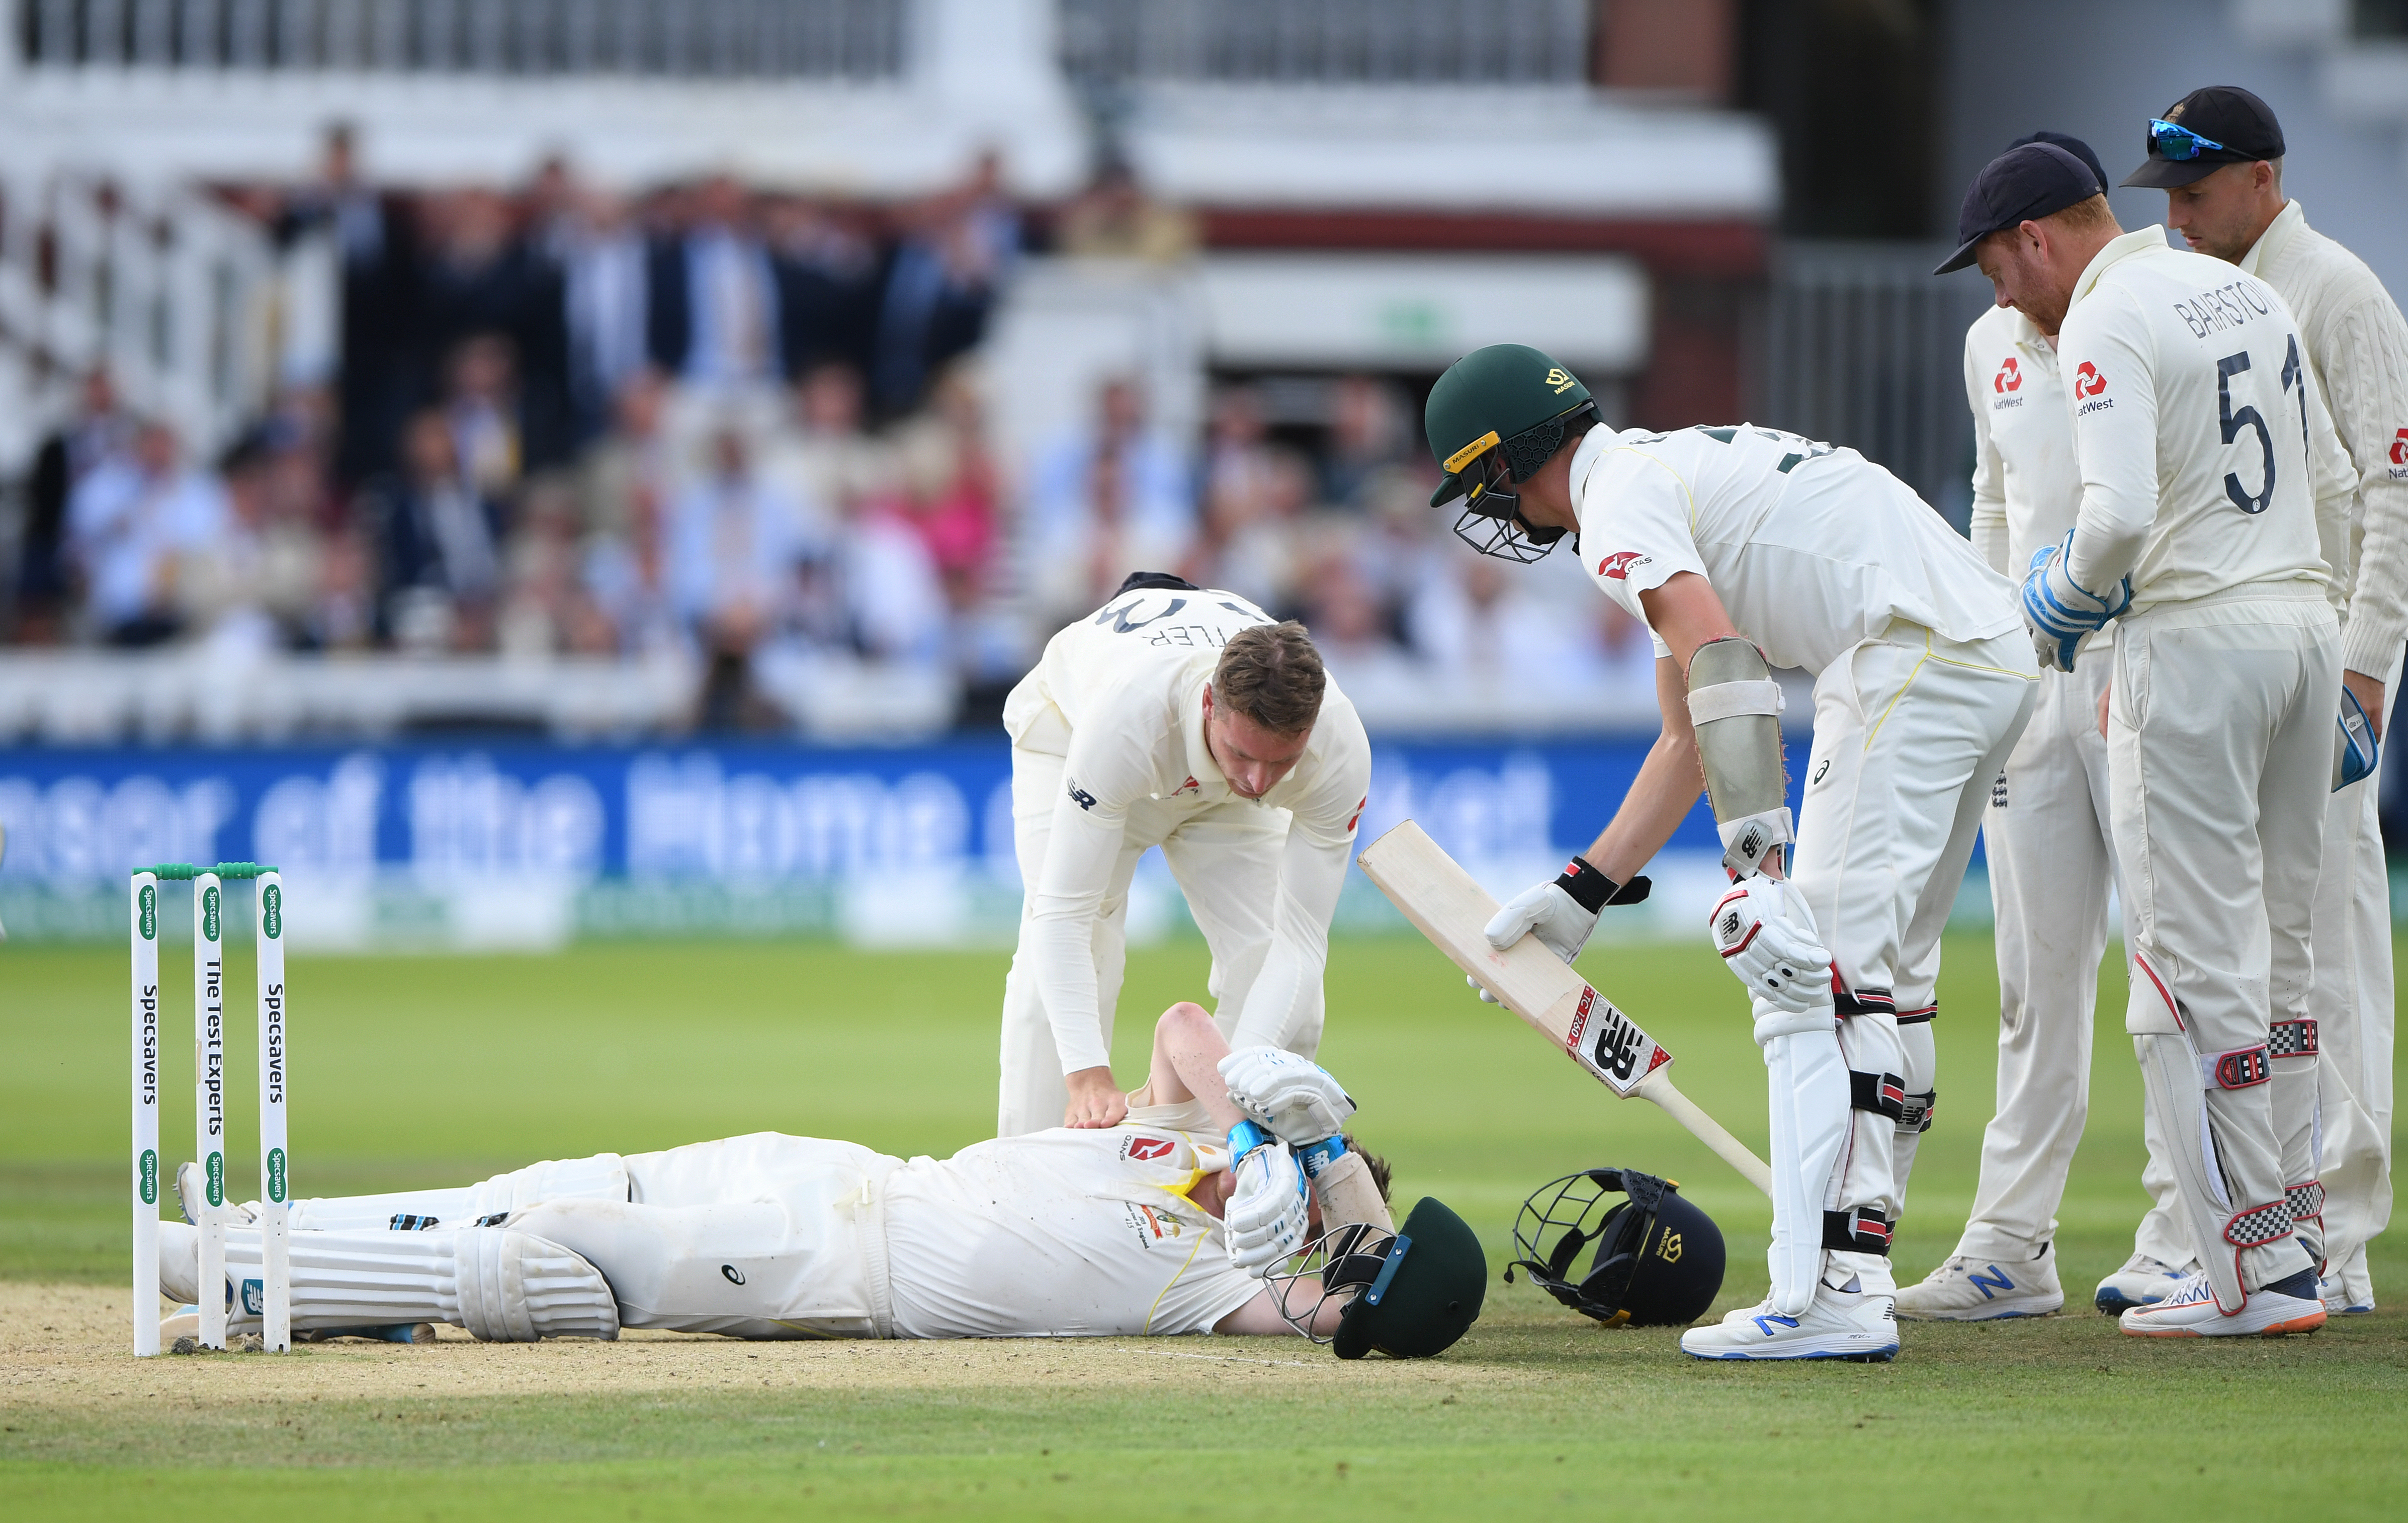 Players attend to Smith after the frightening blow // Getty